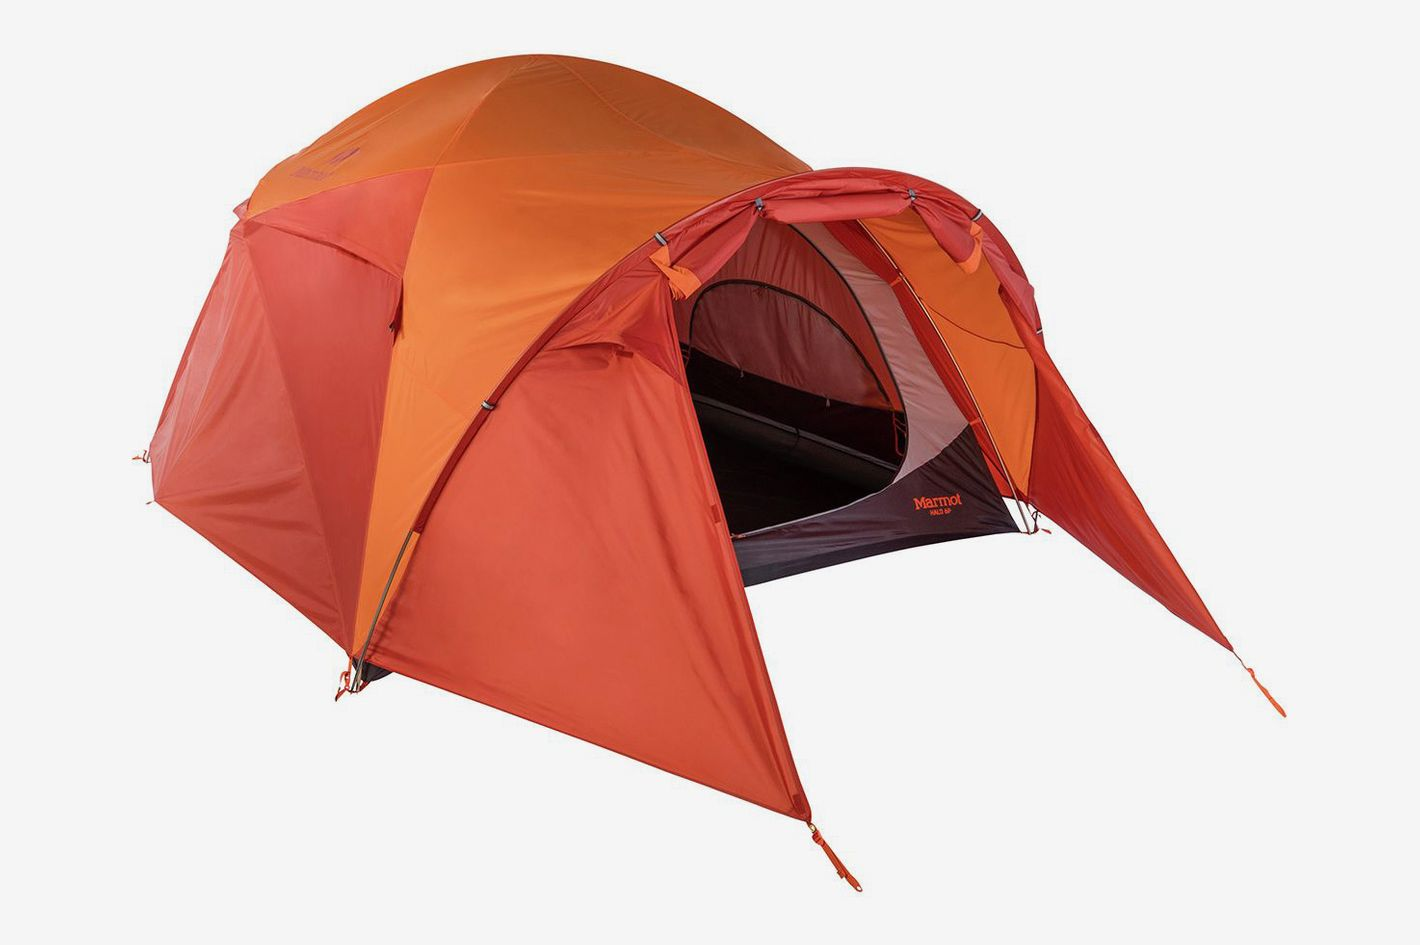 Marmot Halo 6-Person Tent & The 8 Best Camping Tents: 2-Person 4-Person and More 2018